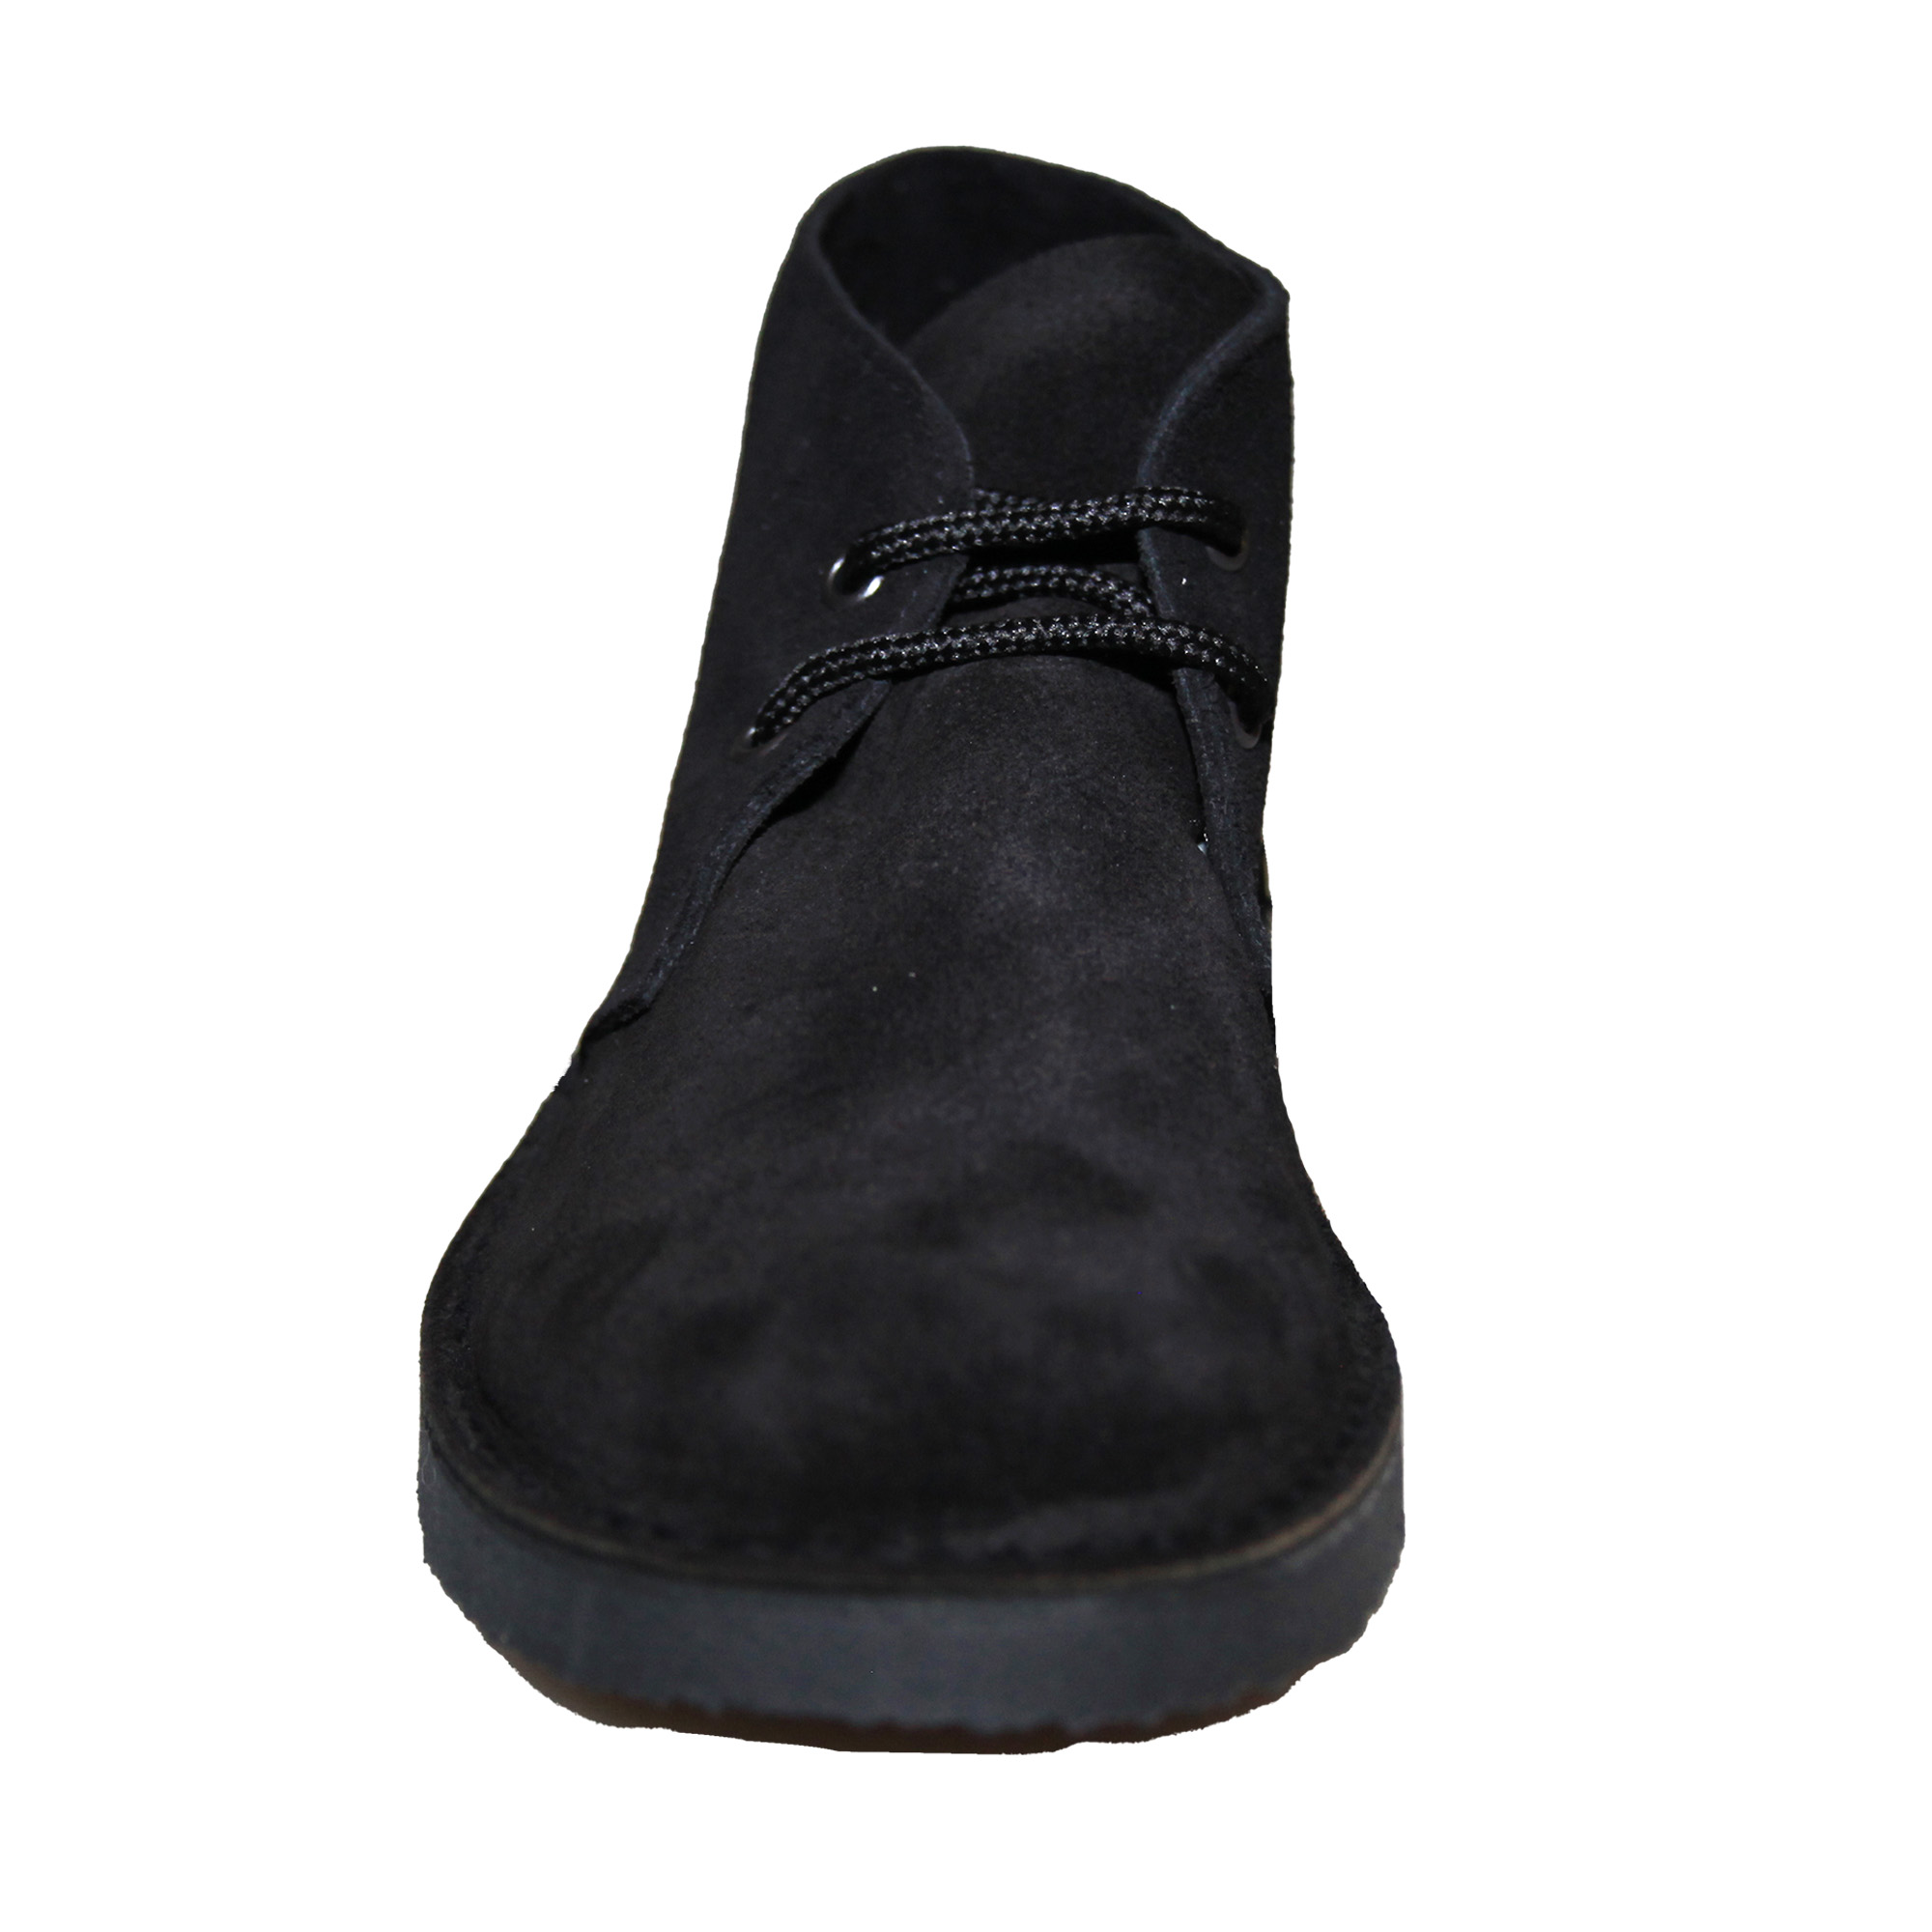 Roamers Womens/Ladies Real Suede Round Toe Unlined Desert Boots (5 UK) (Navy)